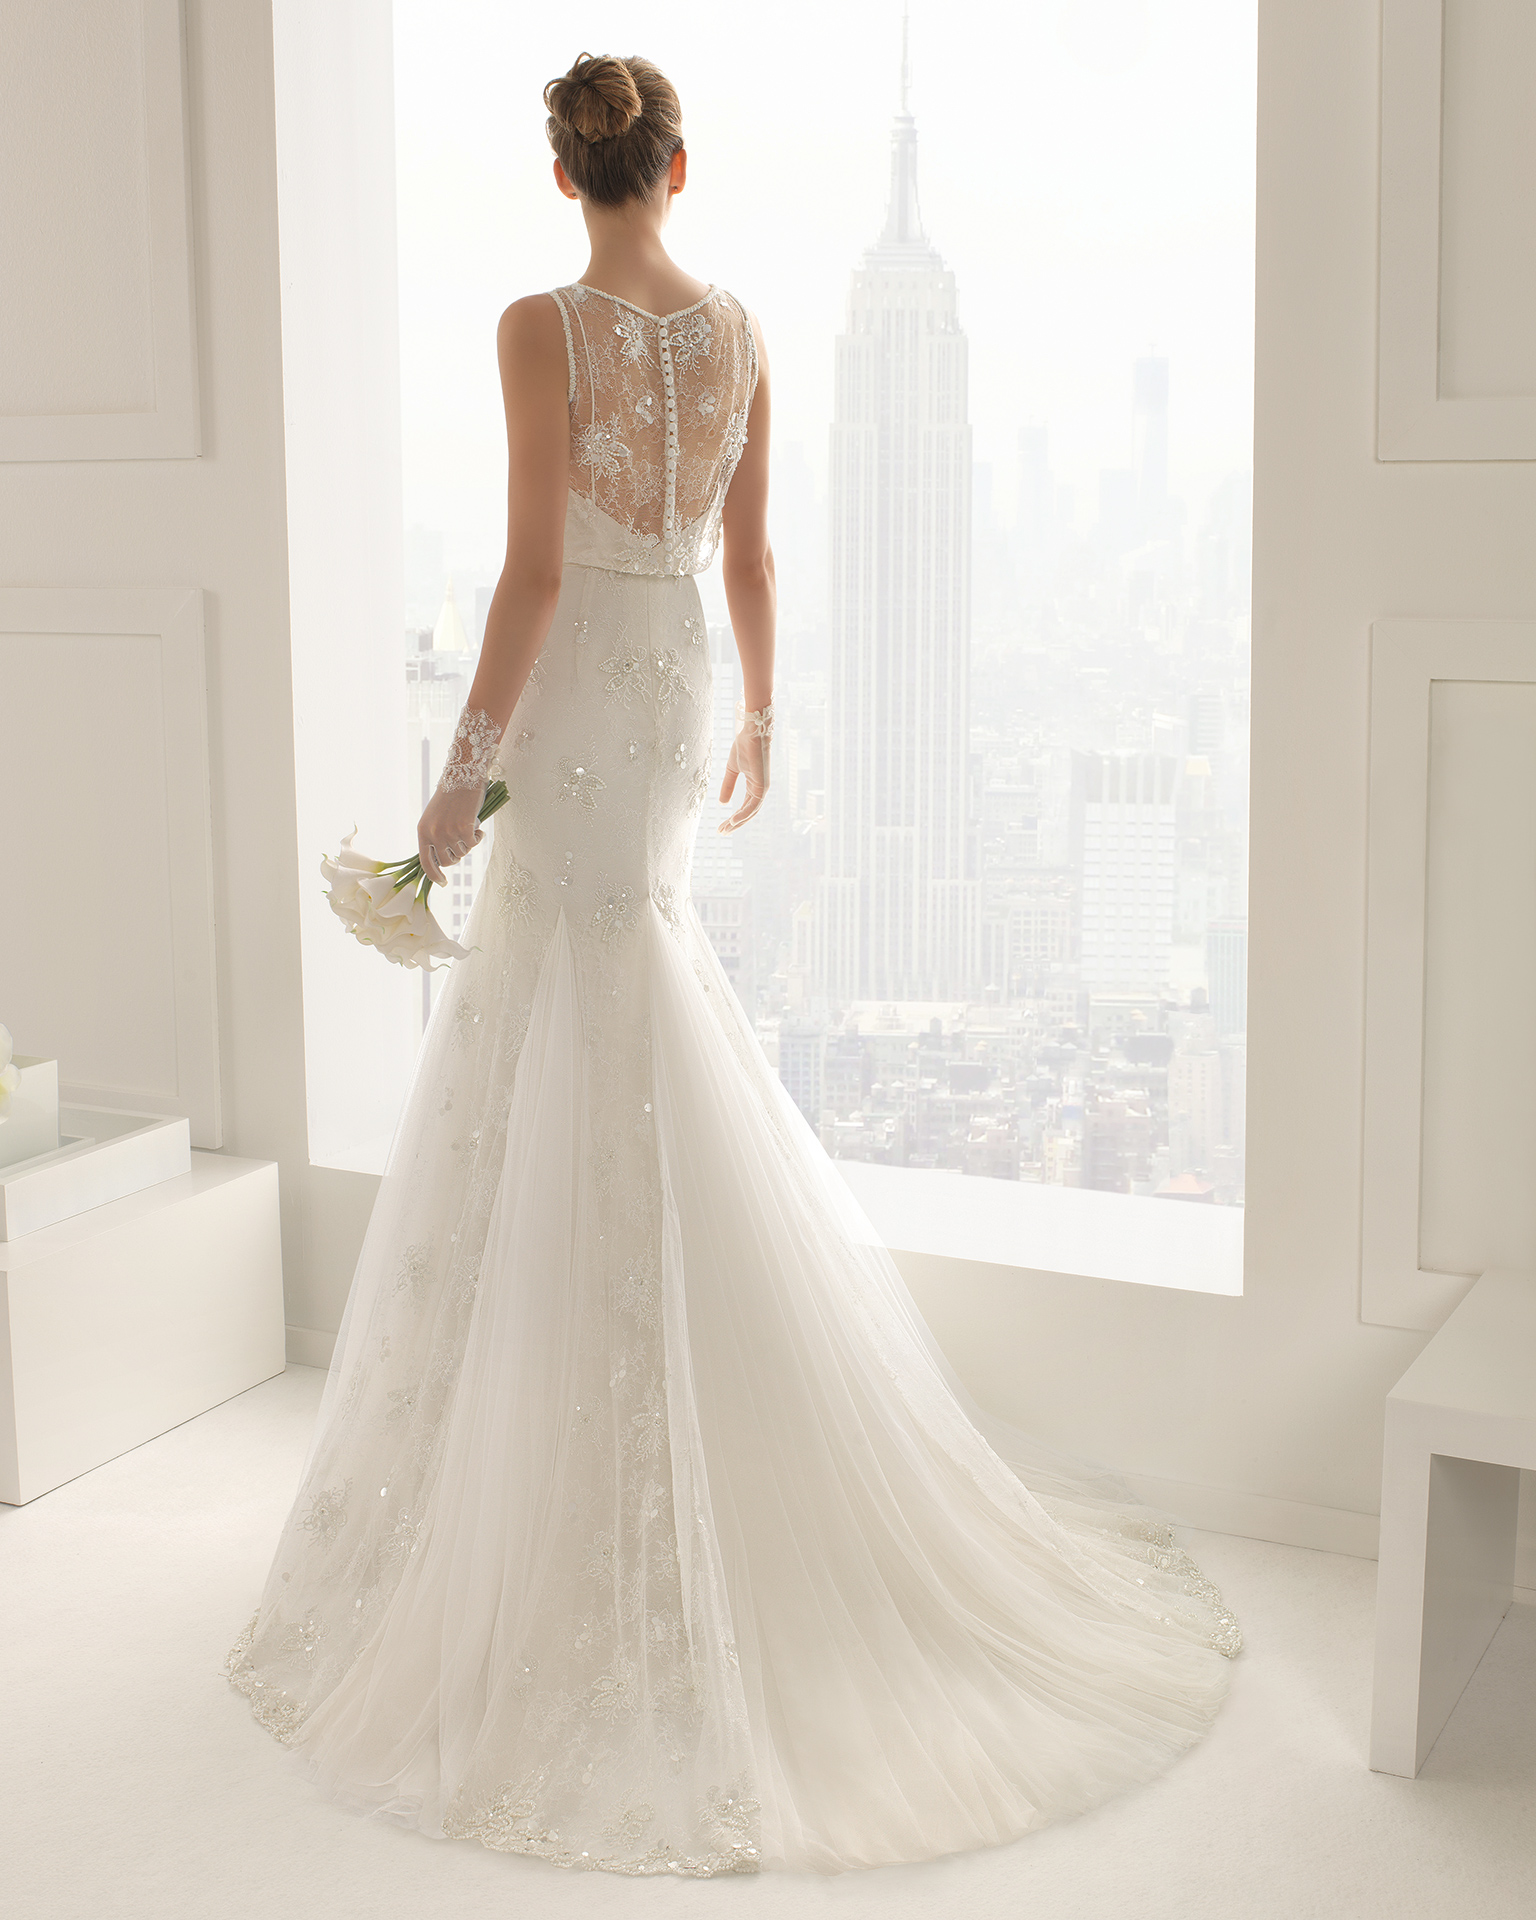 Rosa clara wedding dresses 2015 modwedding for Rosa clara wedding dresses 2014